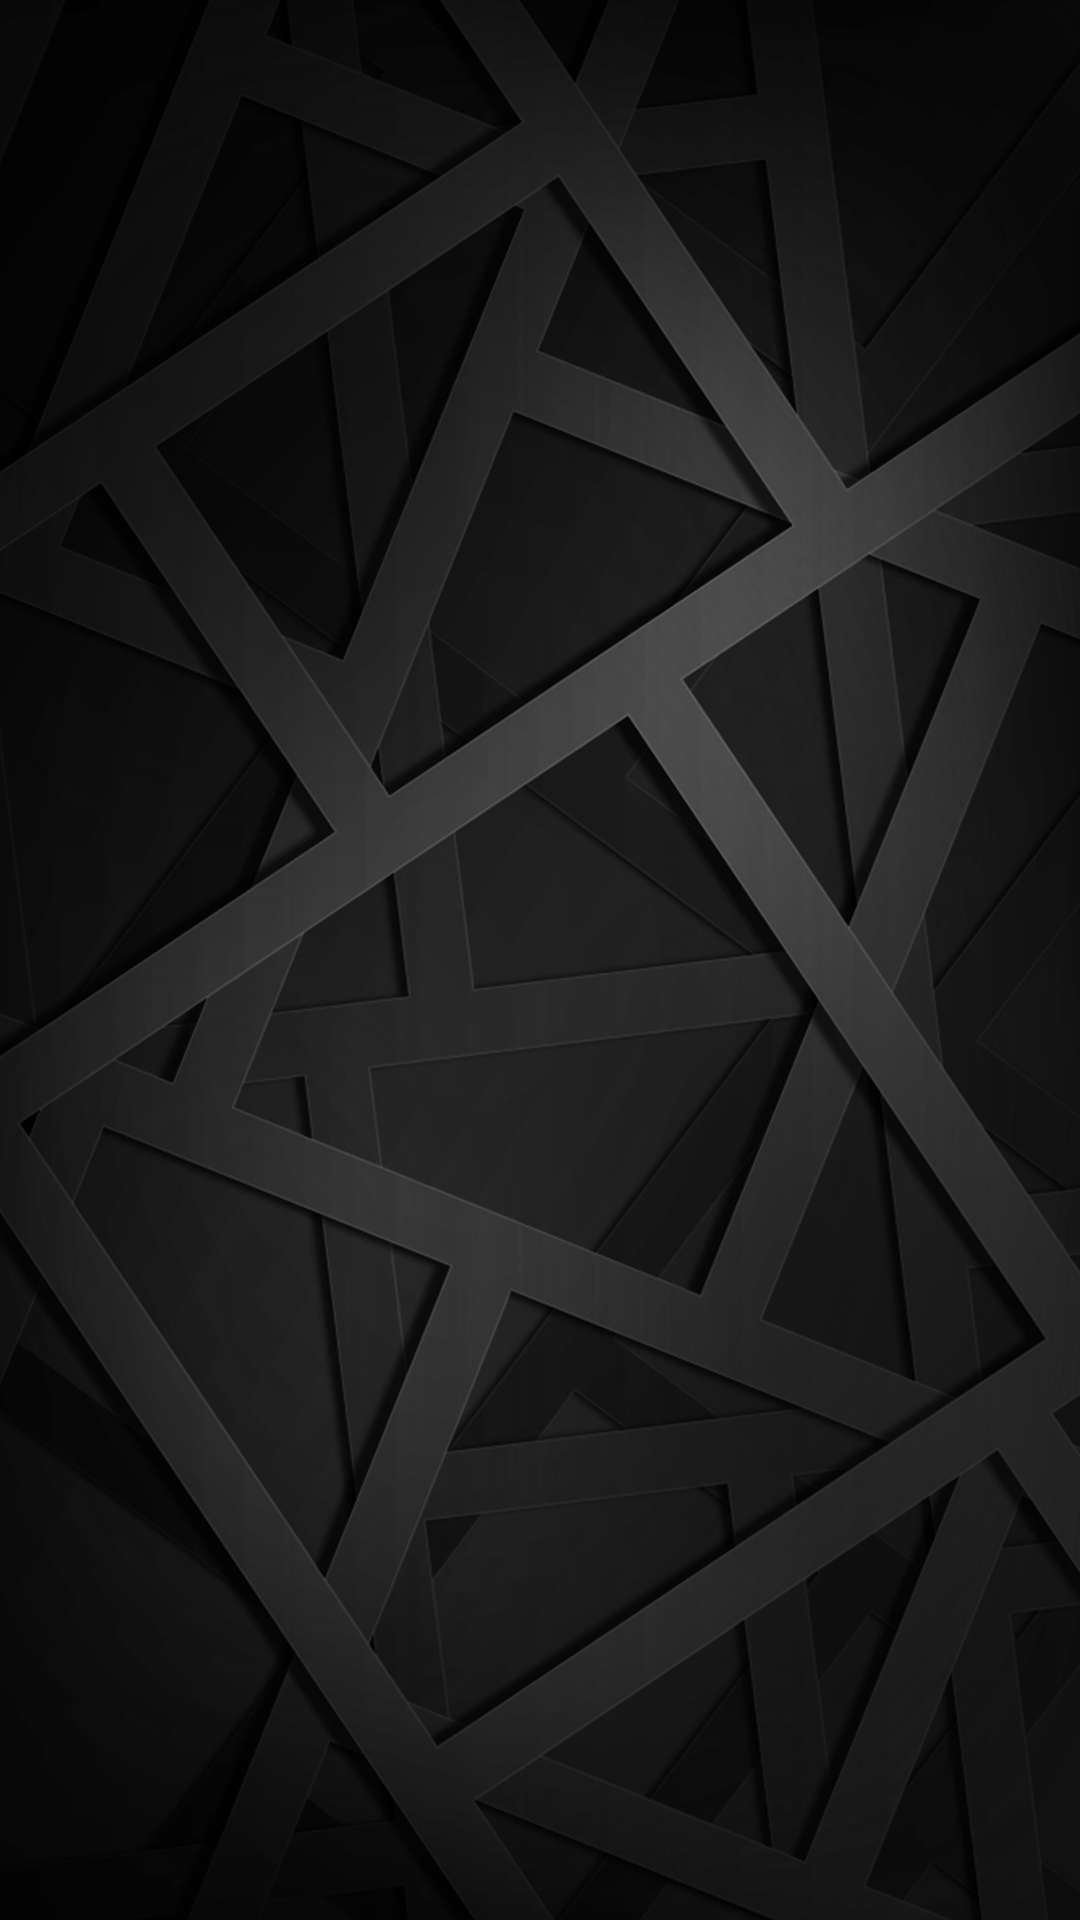 Ultra HD Geometric Black Wallpaper For Your Mobile Phone ...